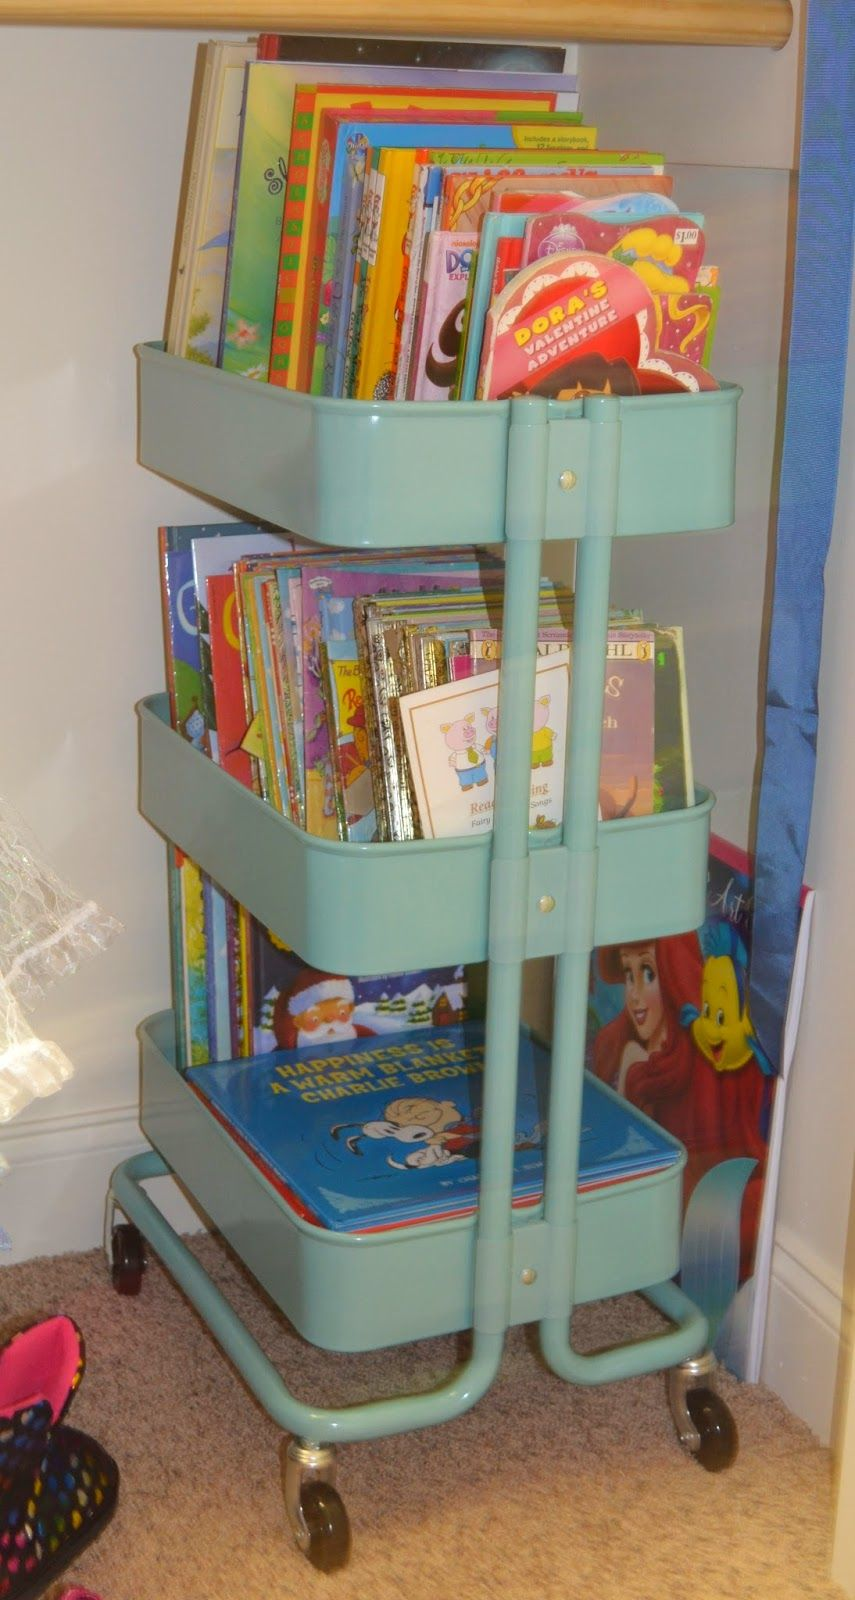 The O.C.D. Life Childrenu0027s Book Storage! & The O.C.D. Life: Childrenu0027s Book Storage! | Storage Ideas ...